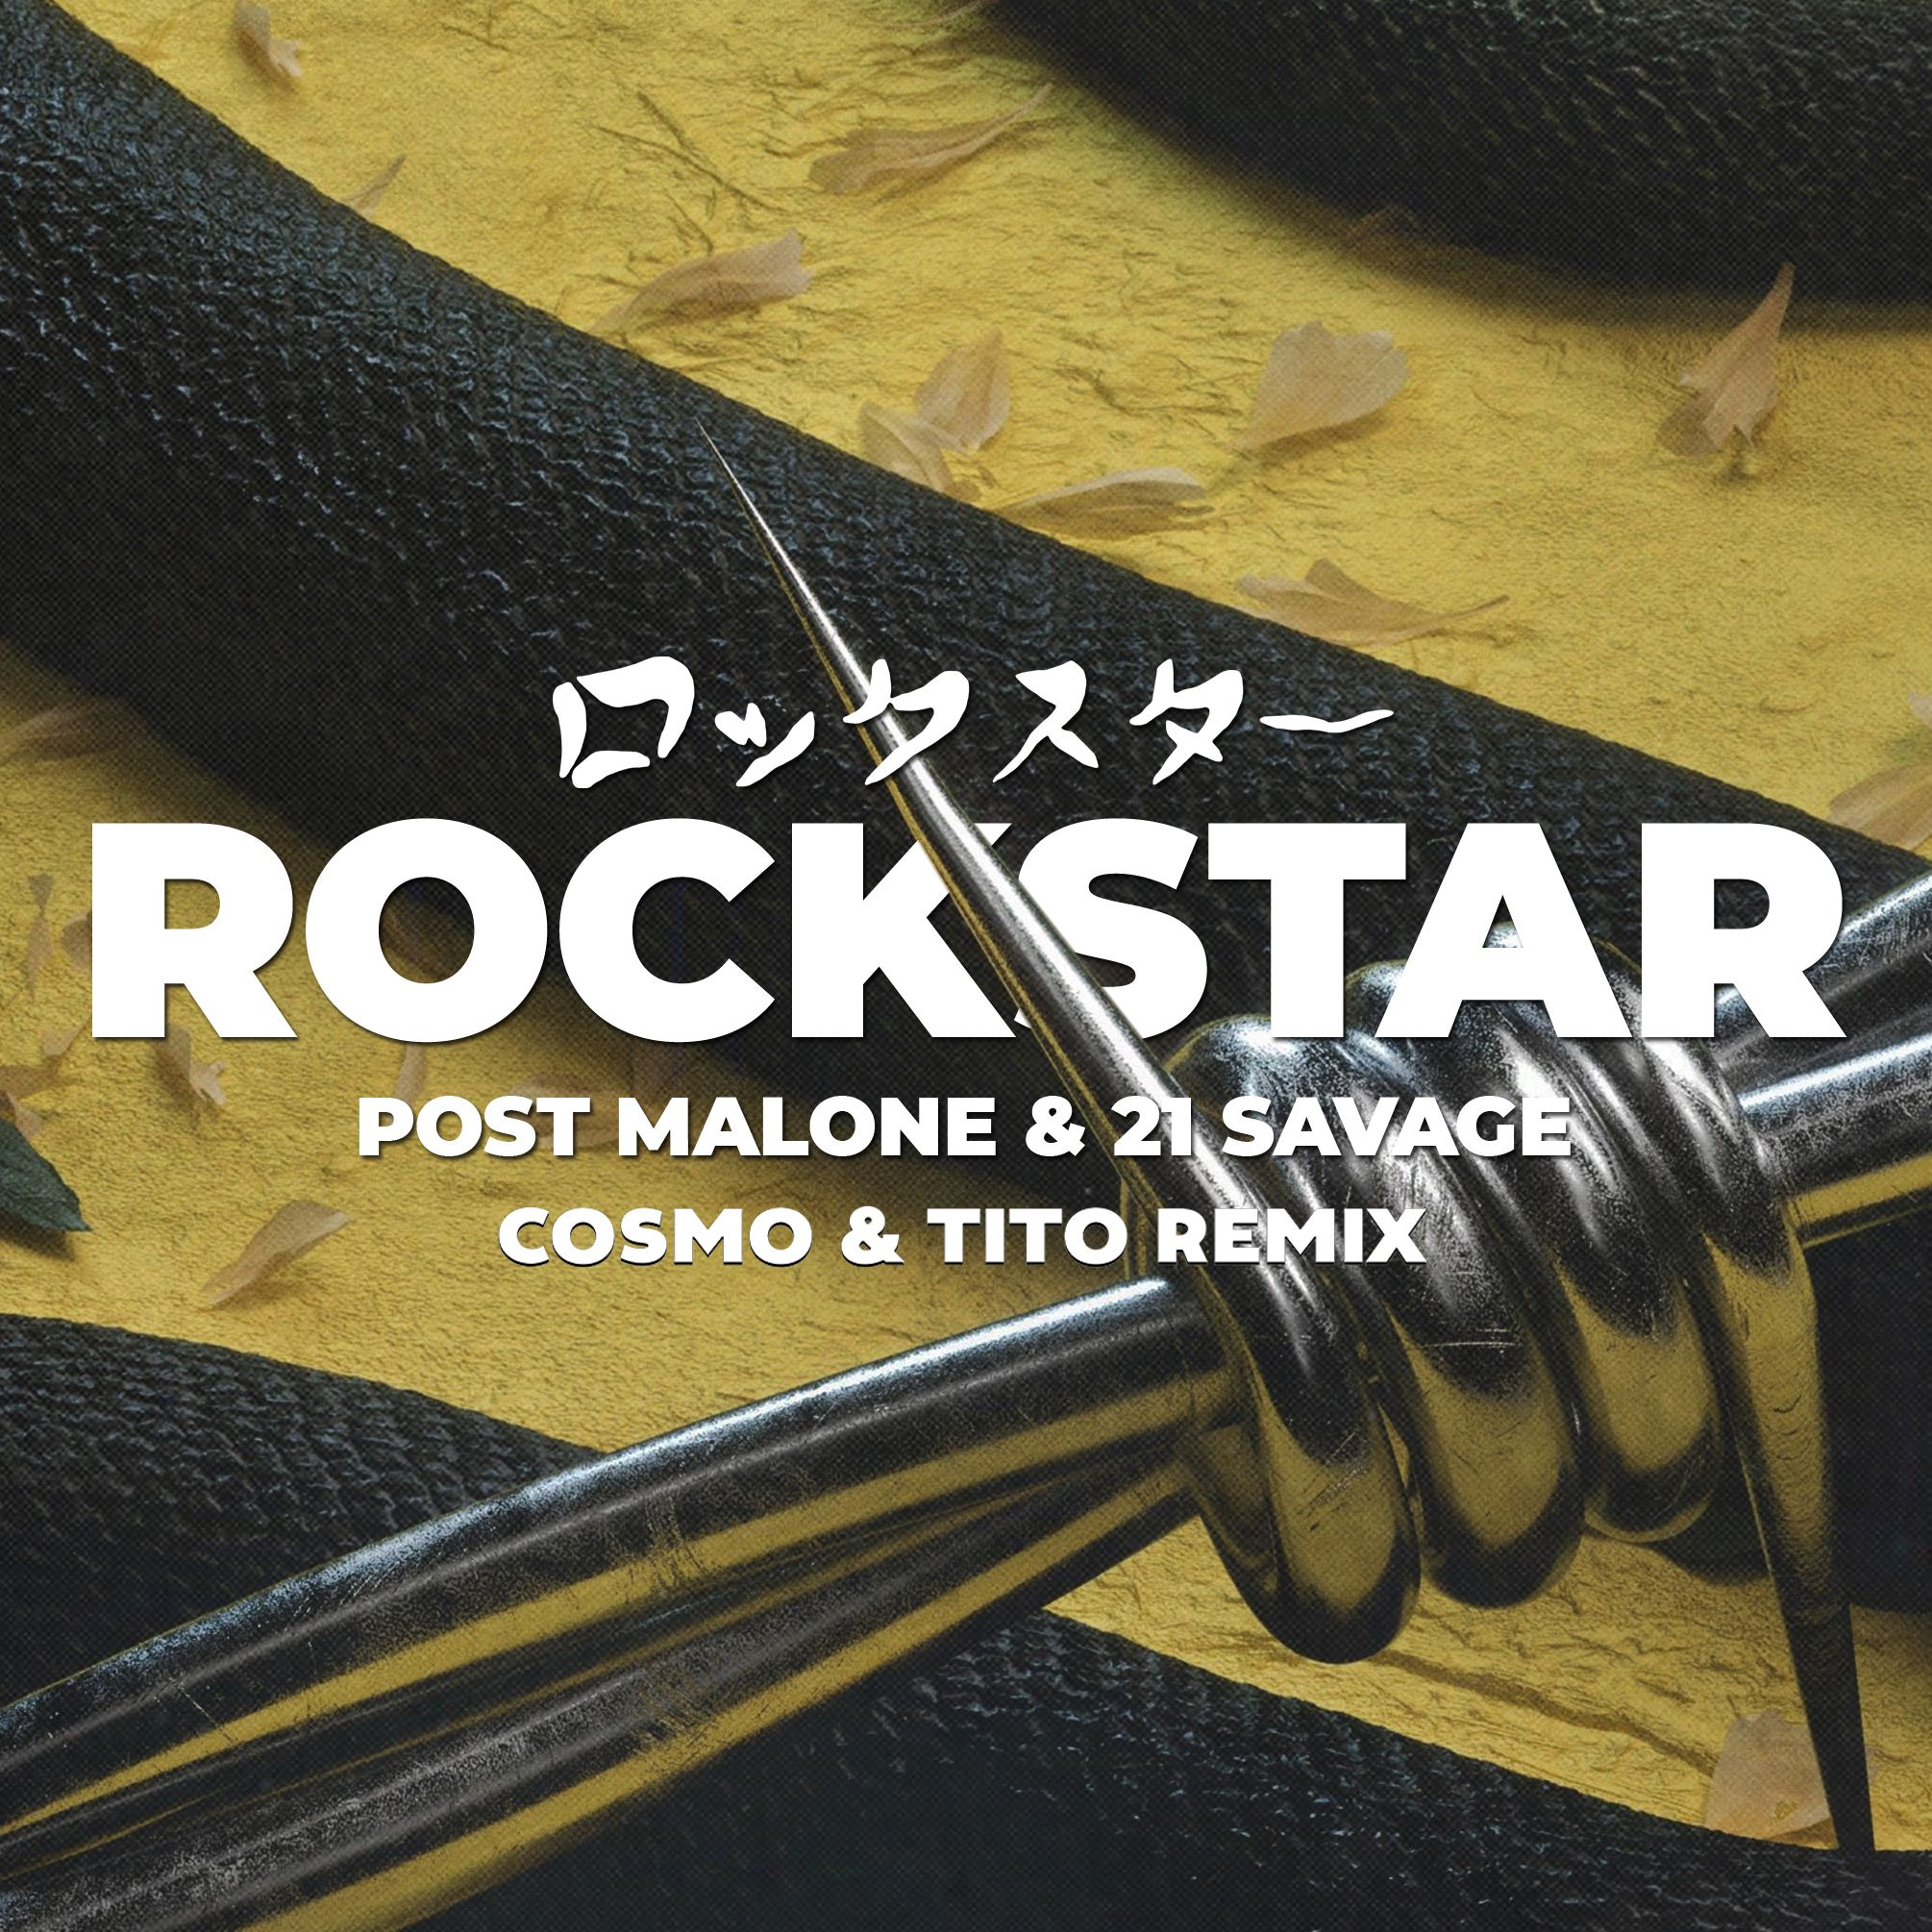 Post Malone Hit This Hard: Rockstar (Cosmo & Tito Bootleg) By Cosmo